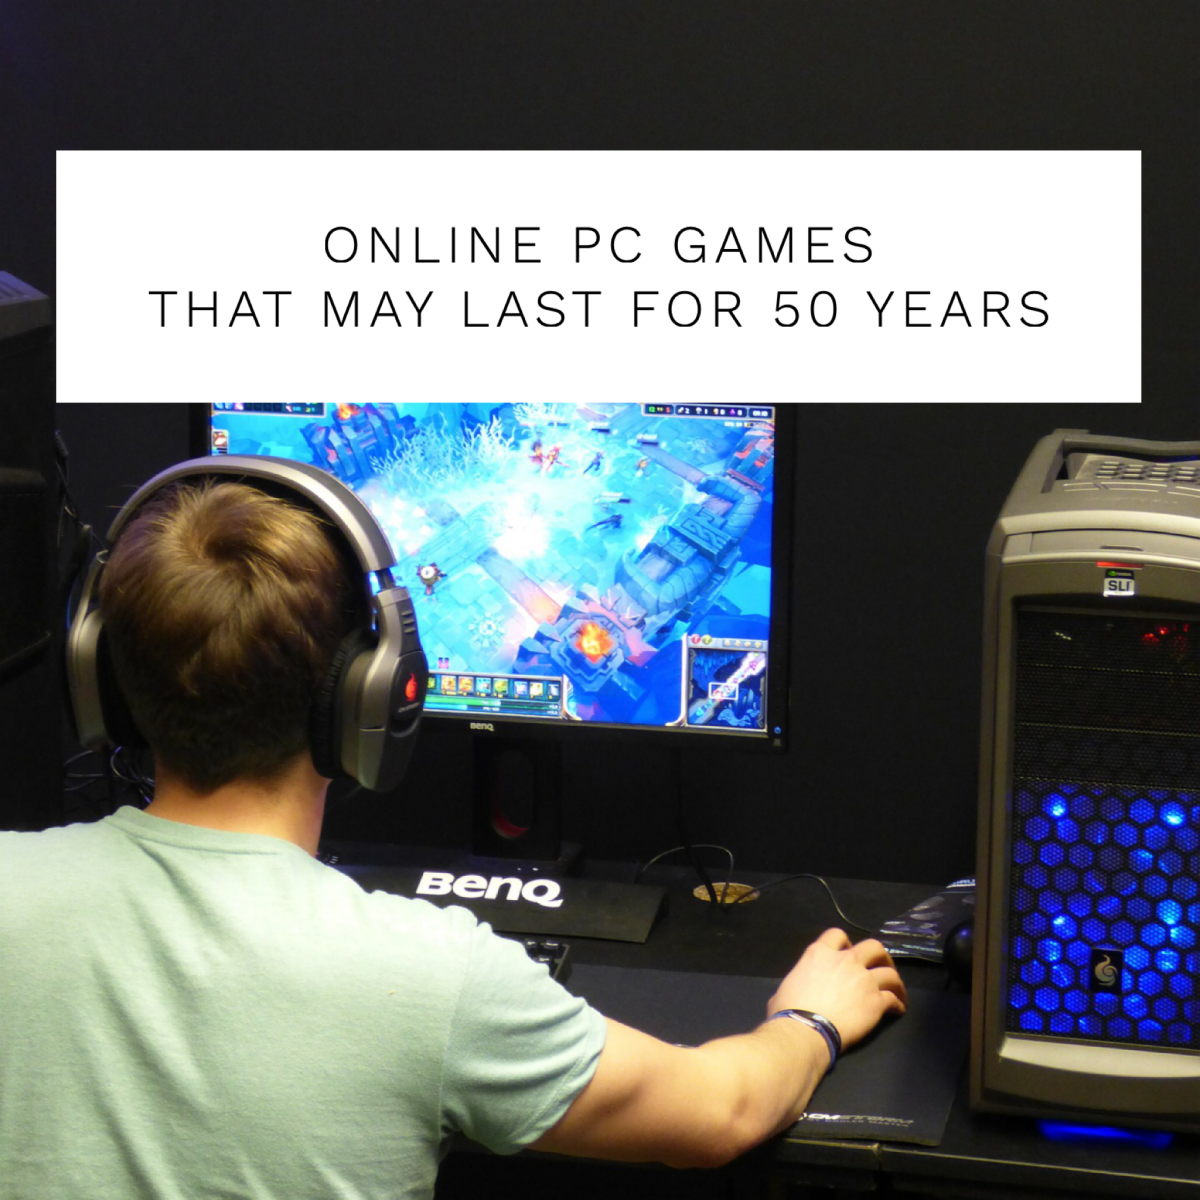 Top 4 Online PC Games That May Last for 50 Years